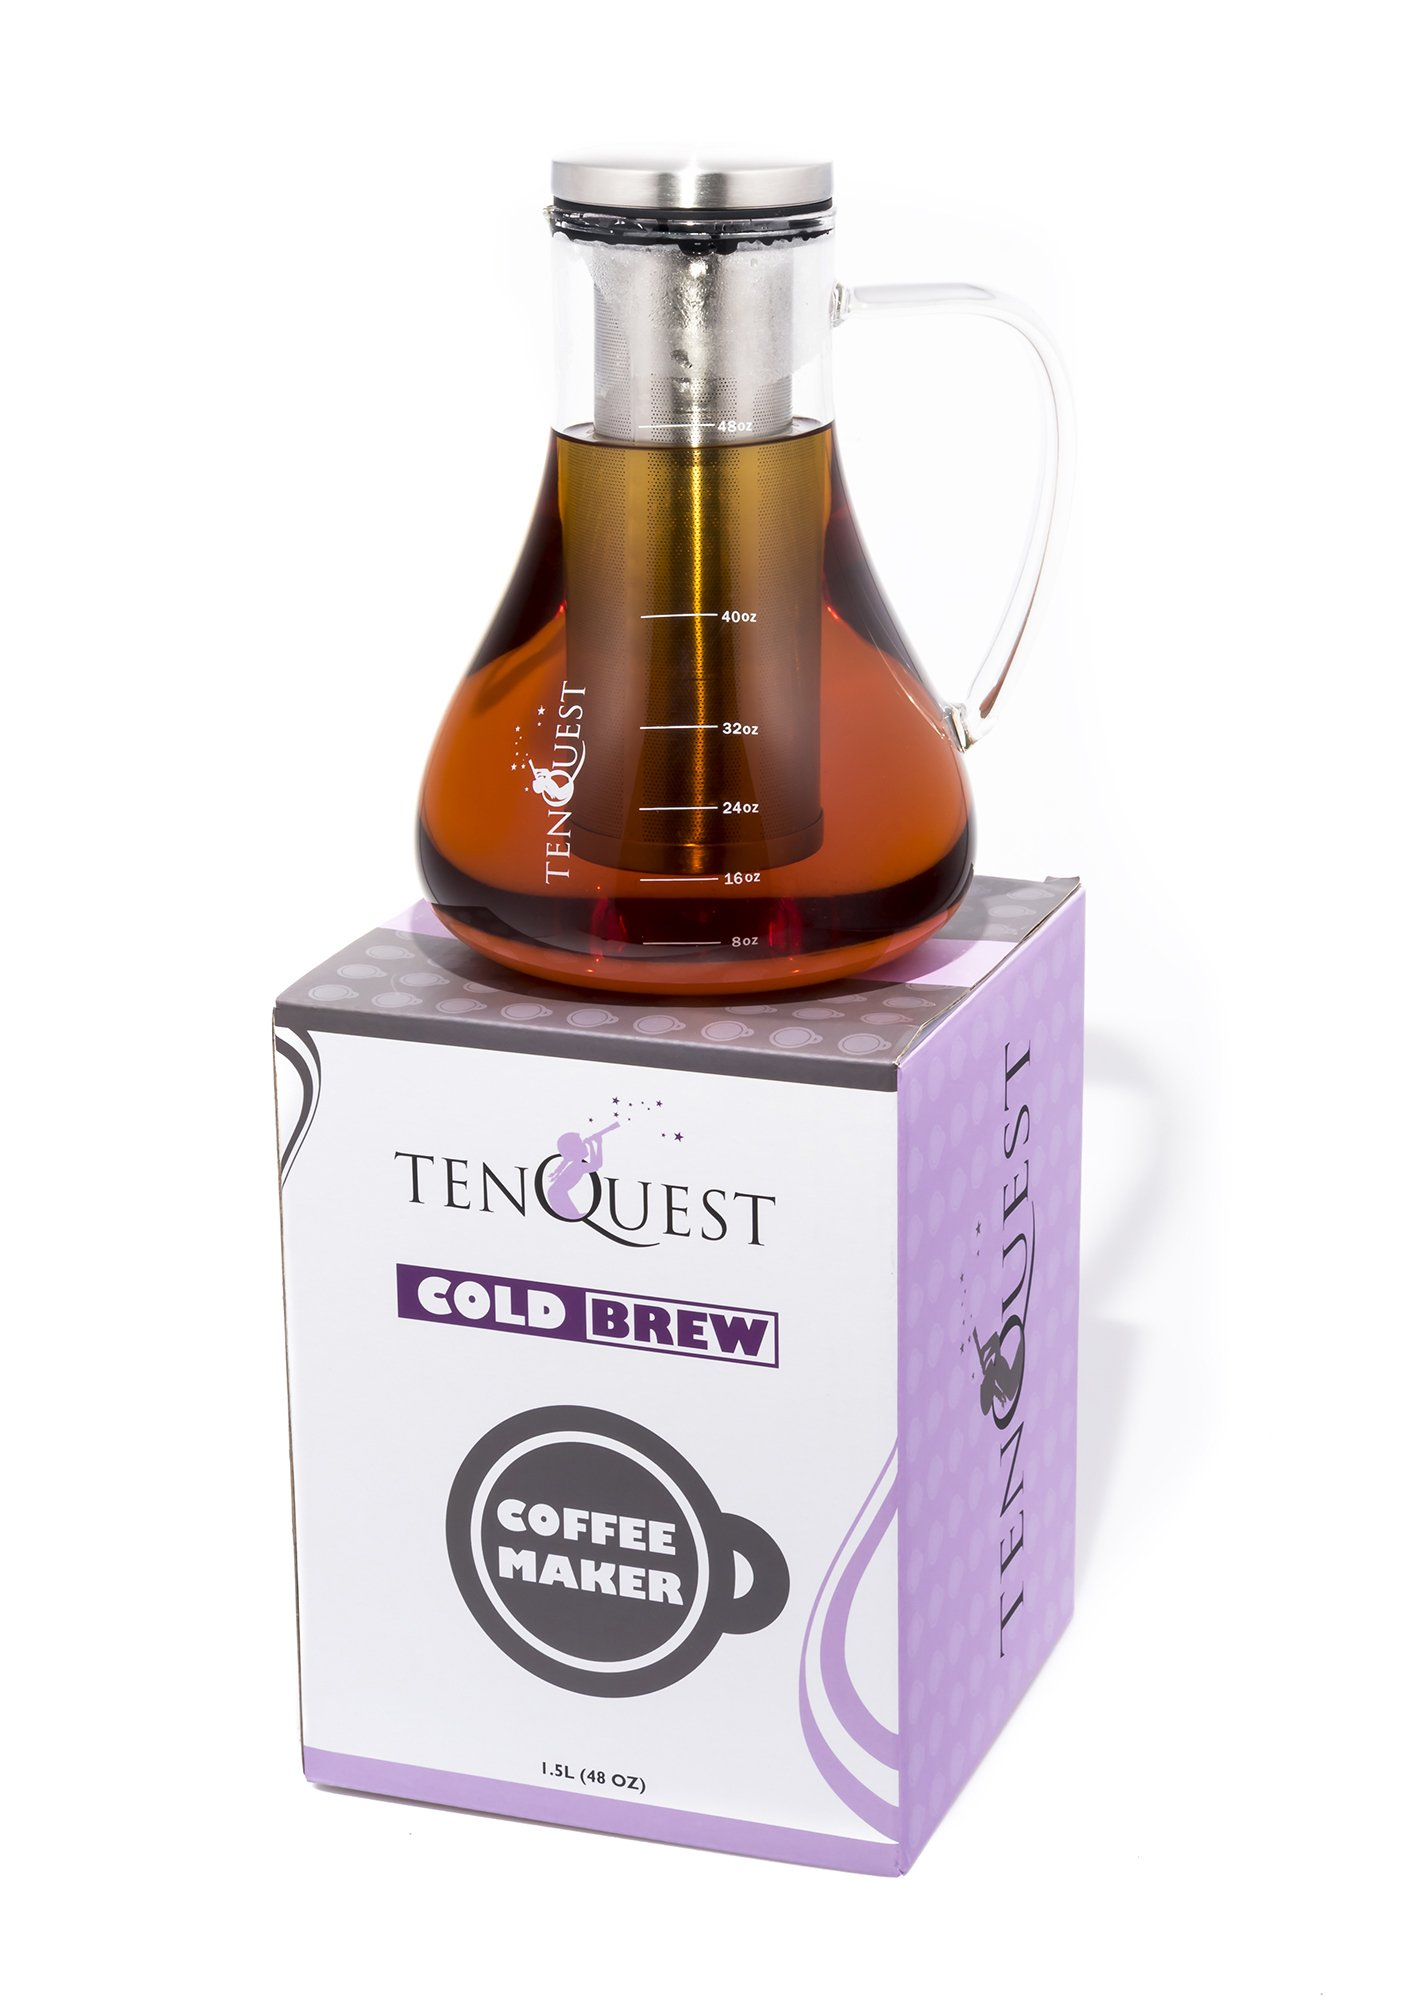 Large Cold Brew Coffee Maker by Tenquest, 1.5L (48 oz) Airtight Brewed Iced Coffee Maker, 2X Double Glass Pitcher Cold Brewer with Removable Filter